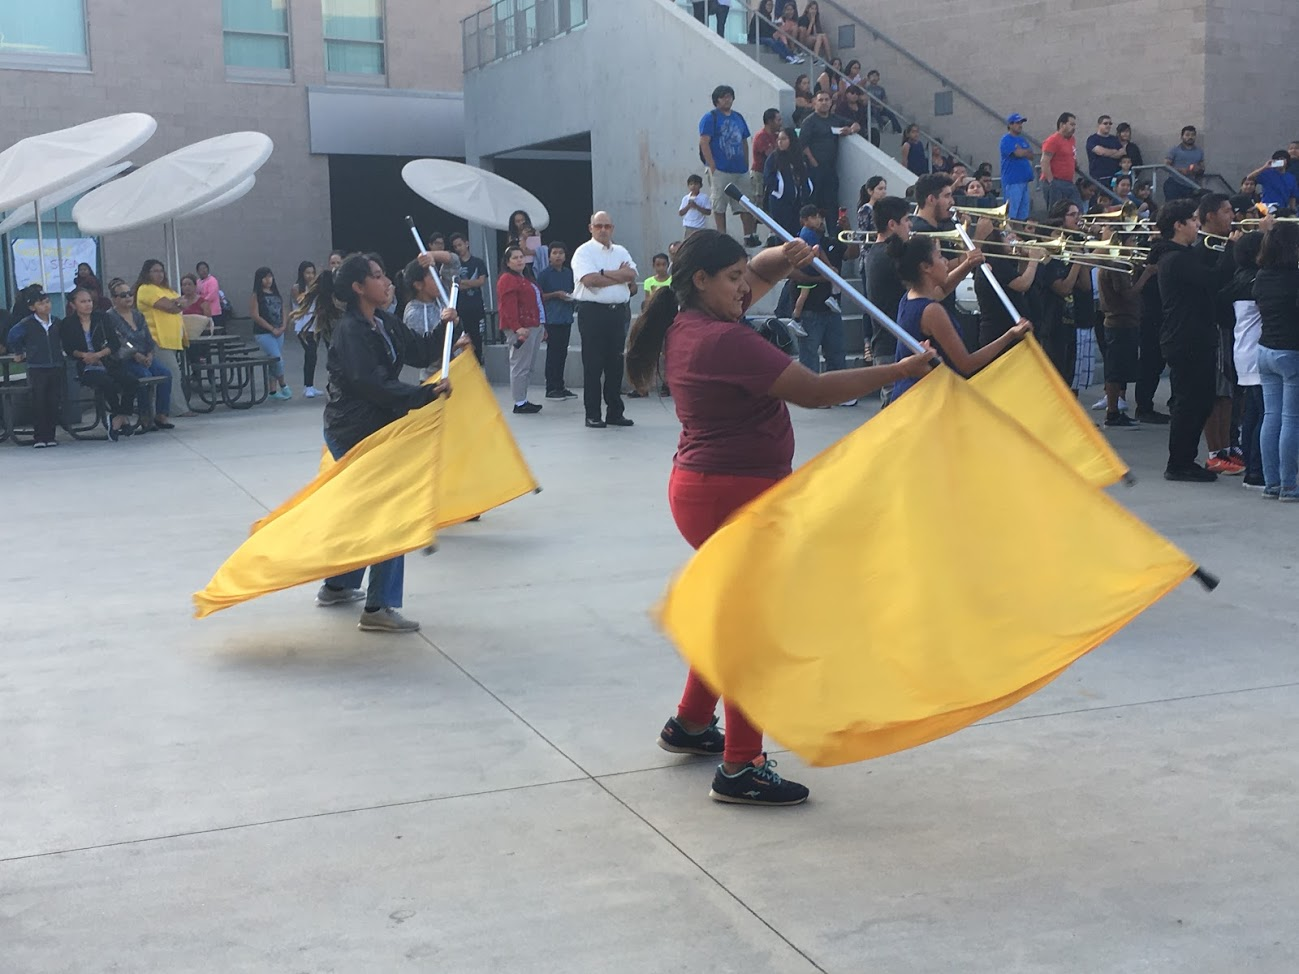 Color Guard show off their hard work and dedication to the team while the brightly colored flags catch people's attention.